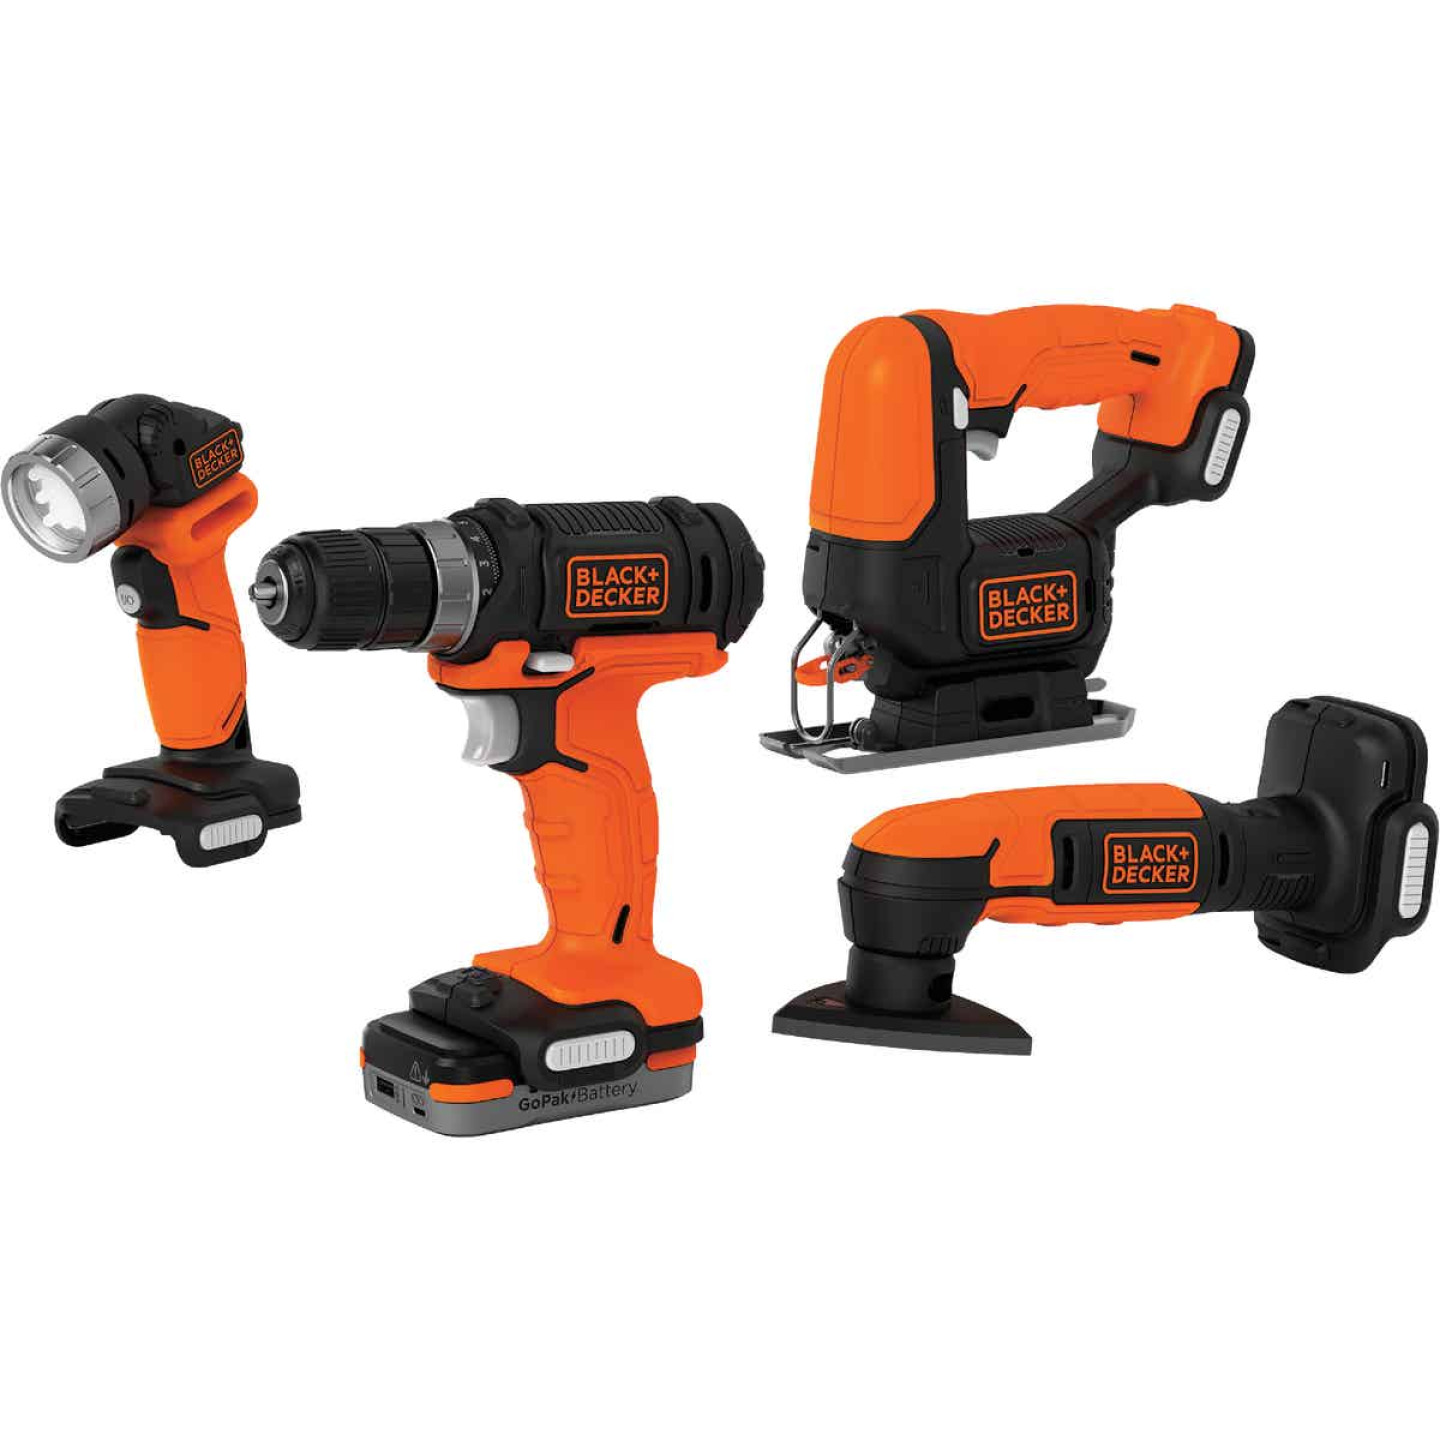 Black & Decker 4-Tool 12 Volt MAX Lithium-Ion Drill/Driver, Jig Saw, Detail Sander & Work Light GoPak Cordless Tool Combo Kit Image 1